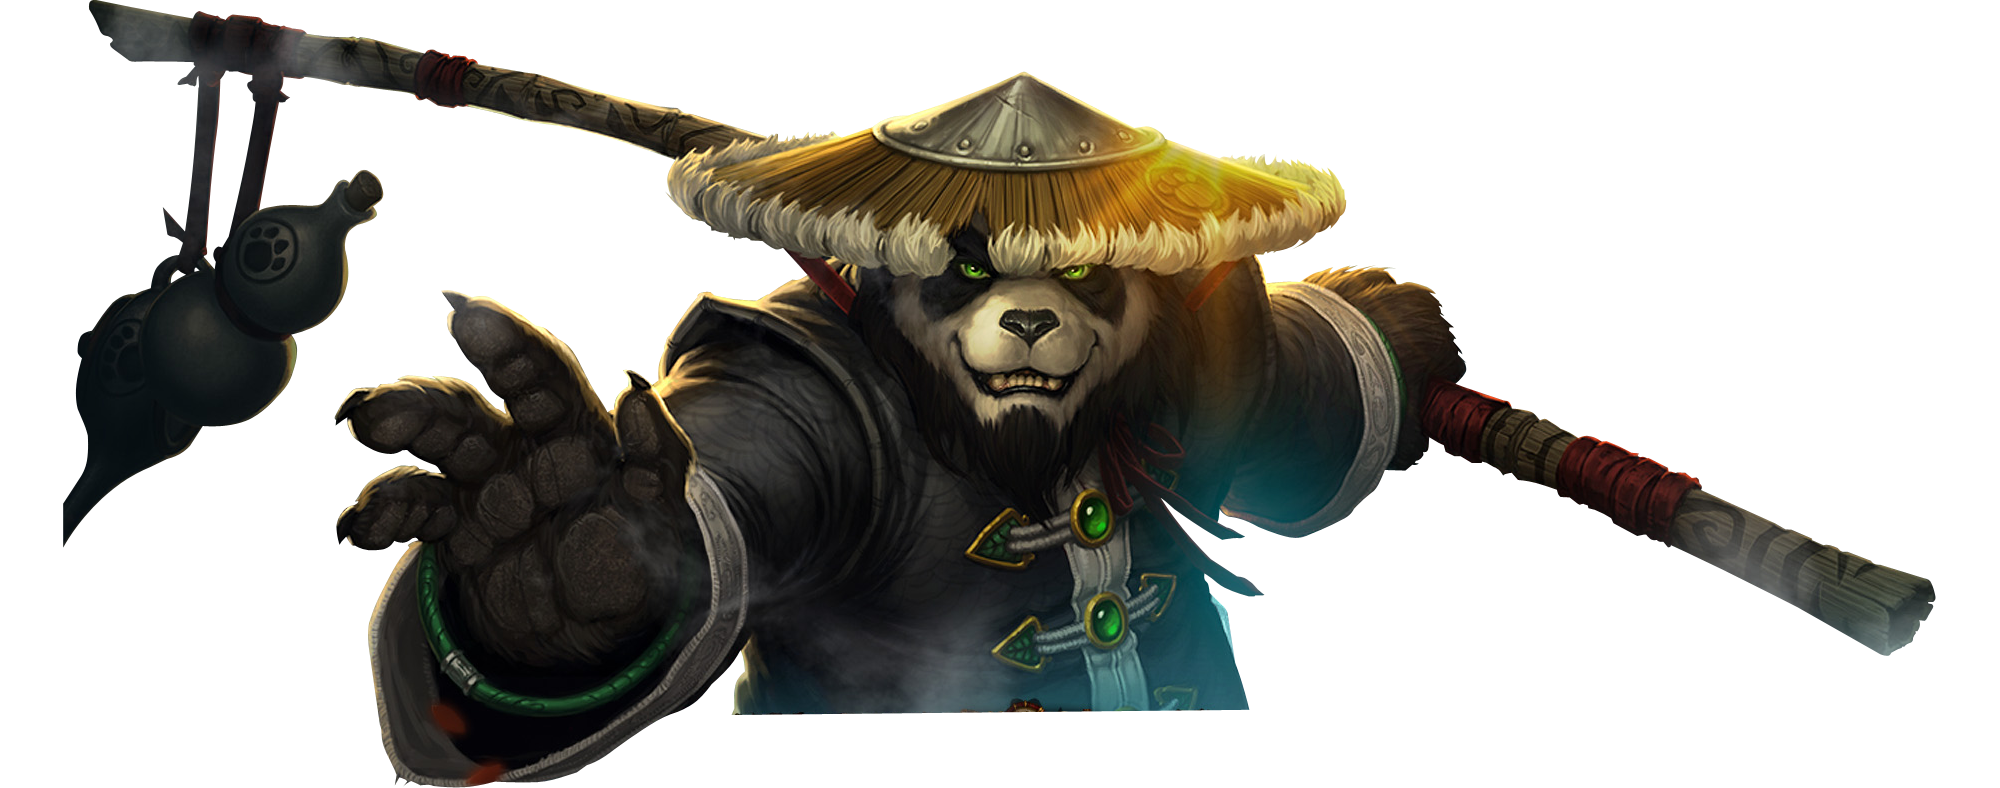 world_of_warcraft_pandaria_render_by_outlawninja-d4ujy4z.png - World Of Warcraft PNG